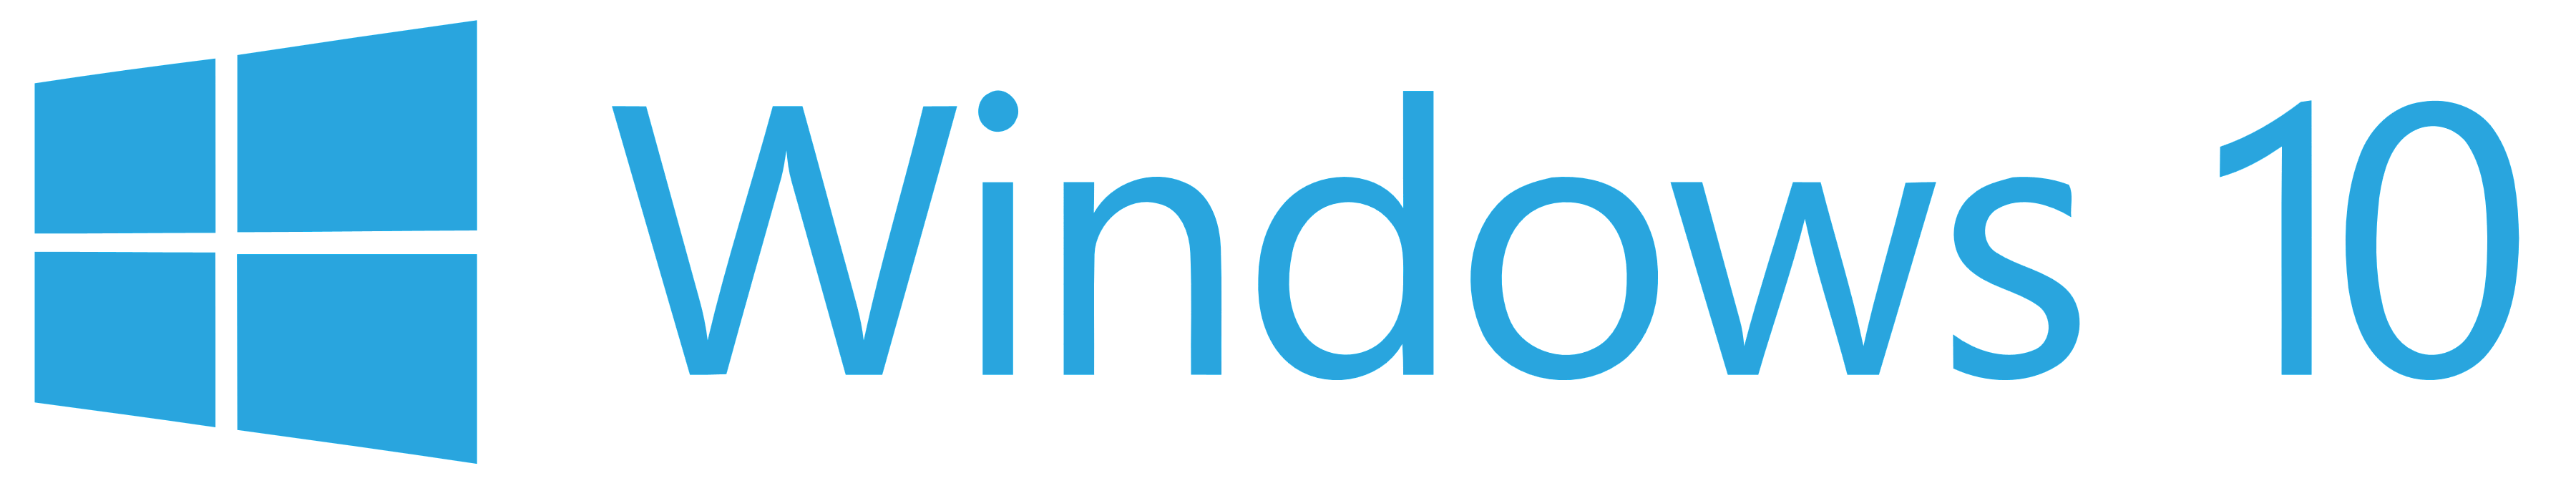 Windows 10 logo png. Microsoft surface featured brand